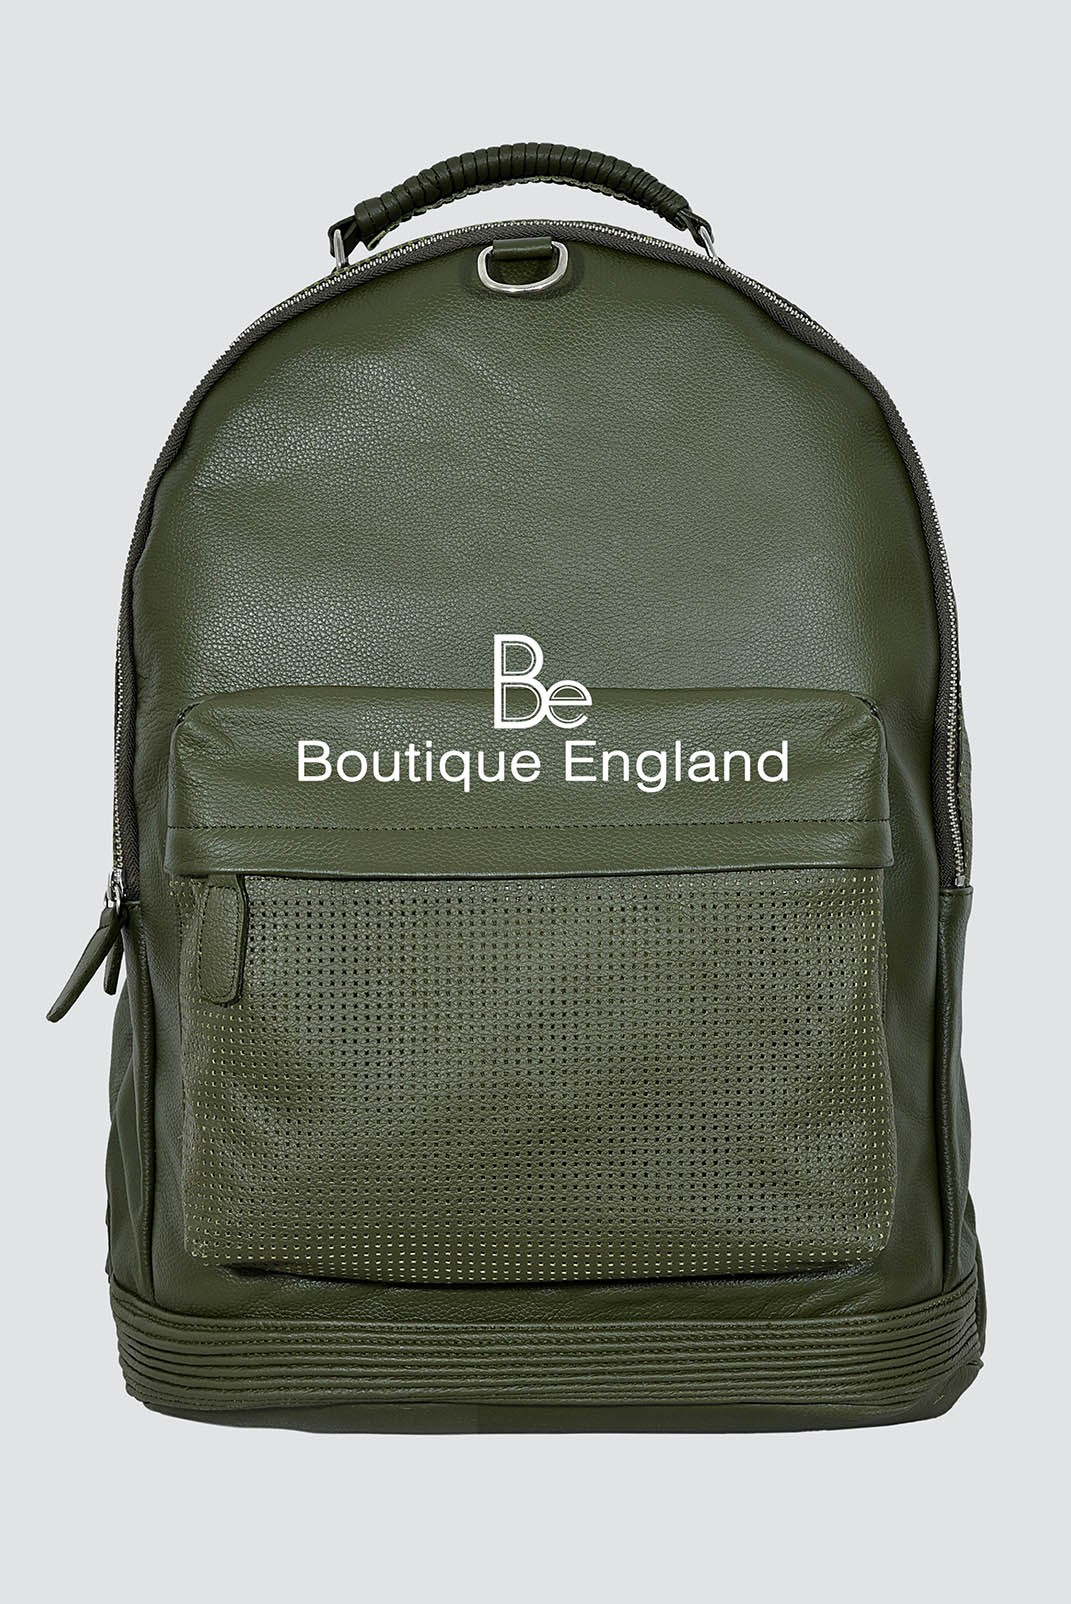 New Large 1005 Commando Green Cowhide Backpack Stylish Duffle Travel Gym Real Genuine Leather Bag